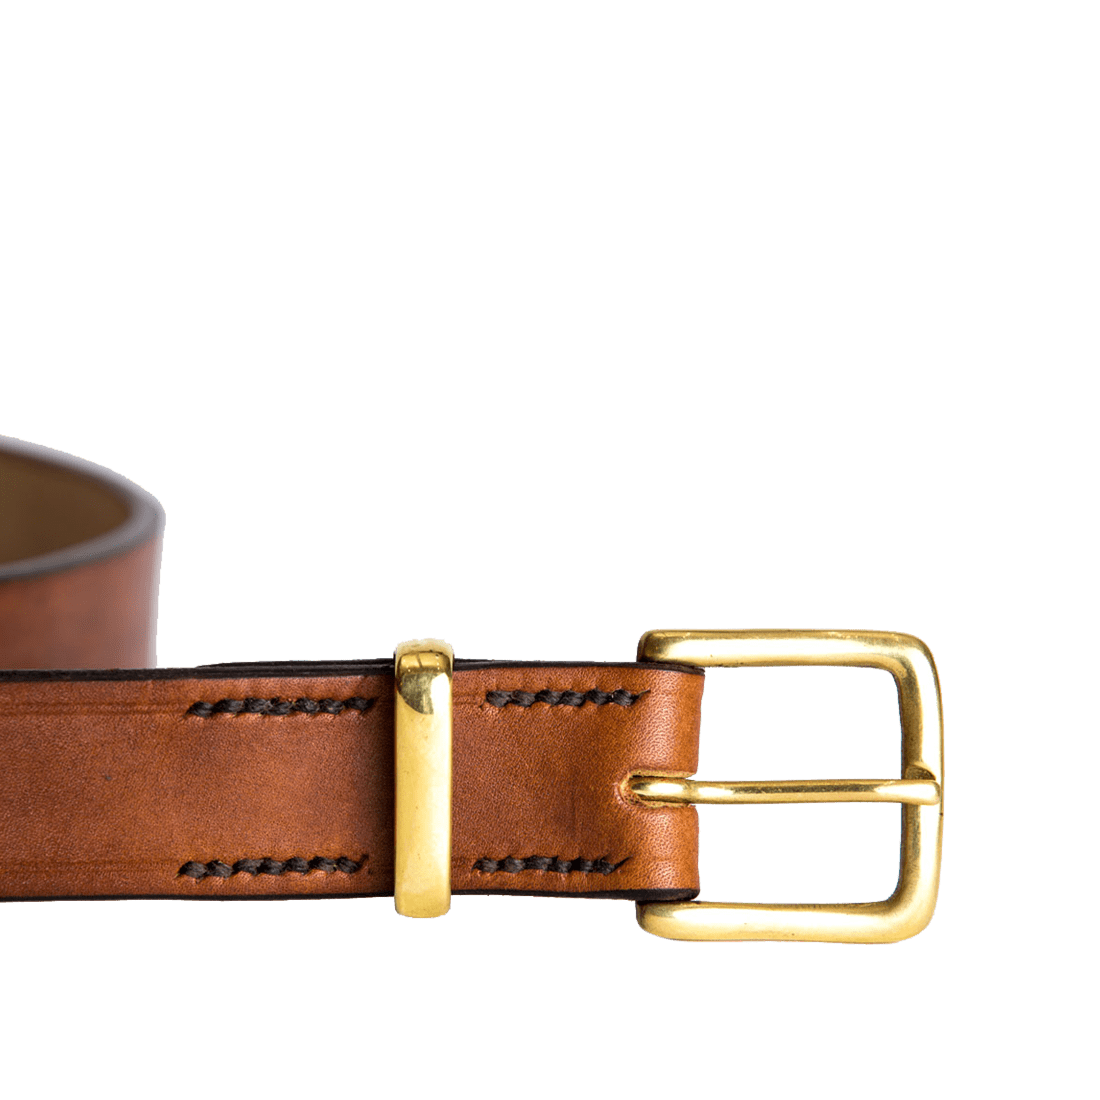 Handmade leather belts - MacKenzie Leather